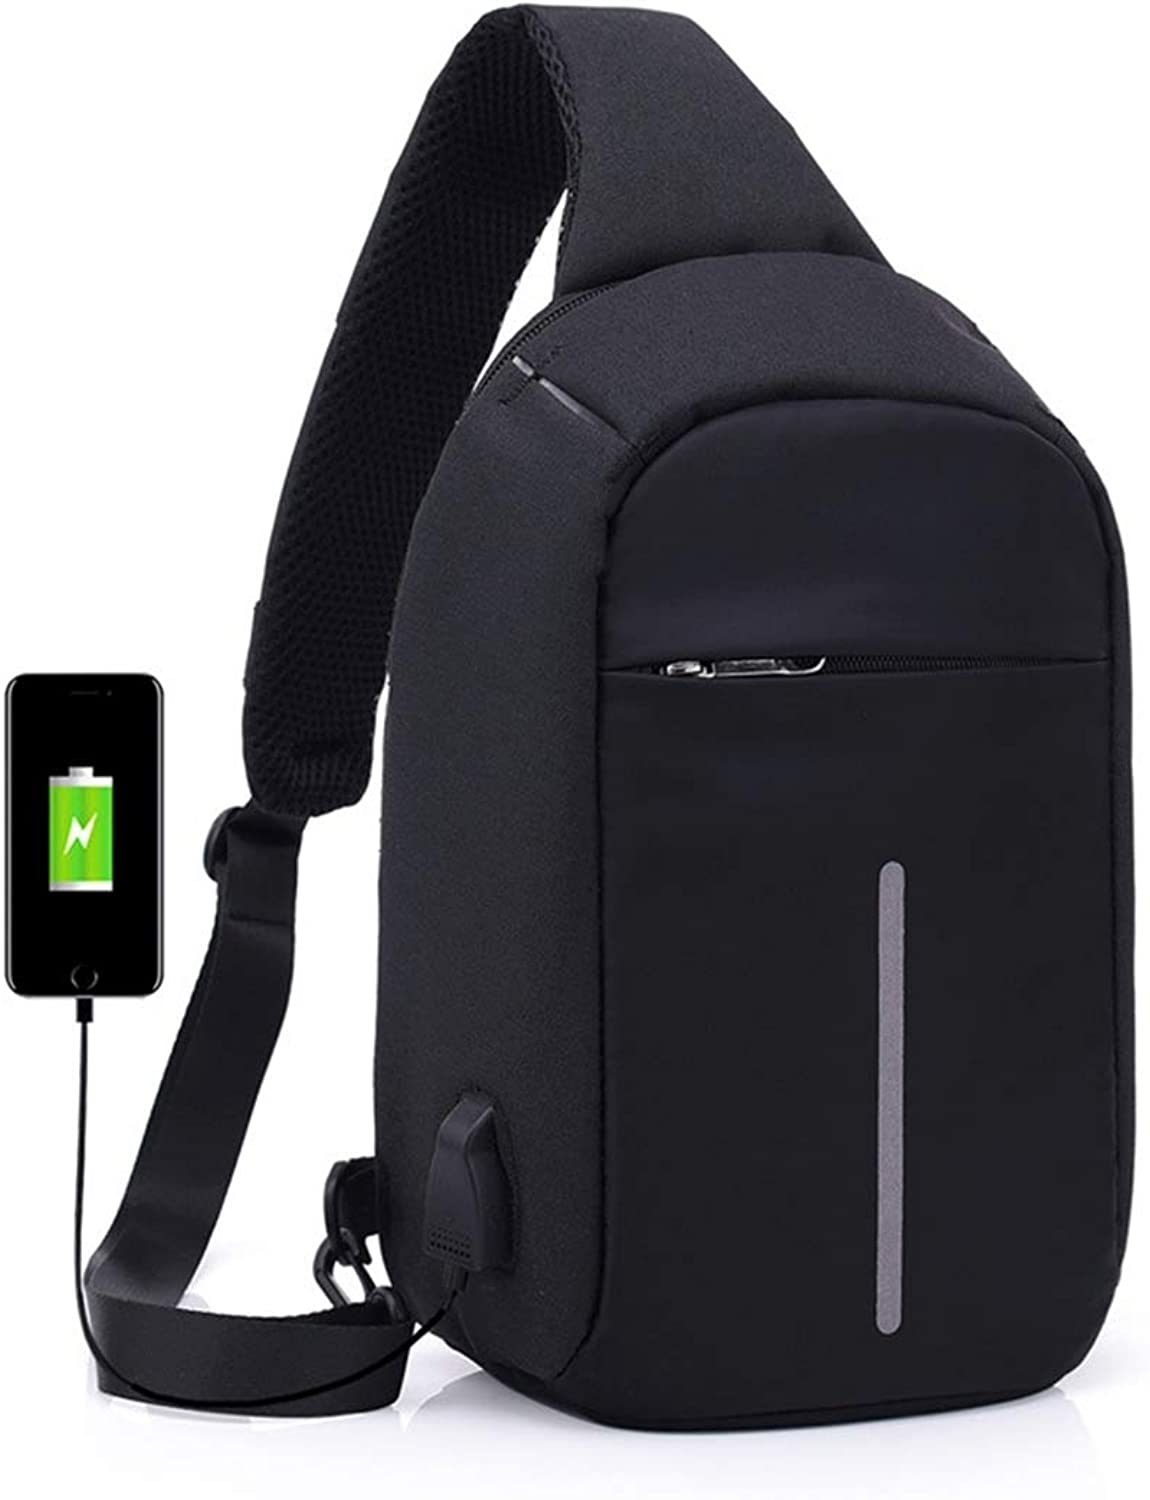 Professional Bag MultiFunction Portable Casual Chest Bag Outdoor Sports AntiTheft Shoulder Bag with External USB Charging Interface for Men Women Outdoor Travel Essentials (color   Black)